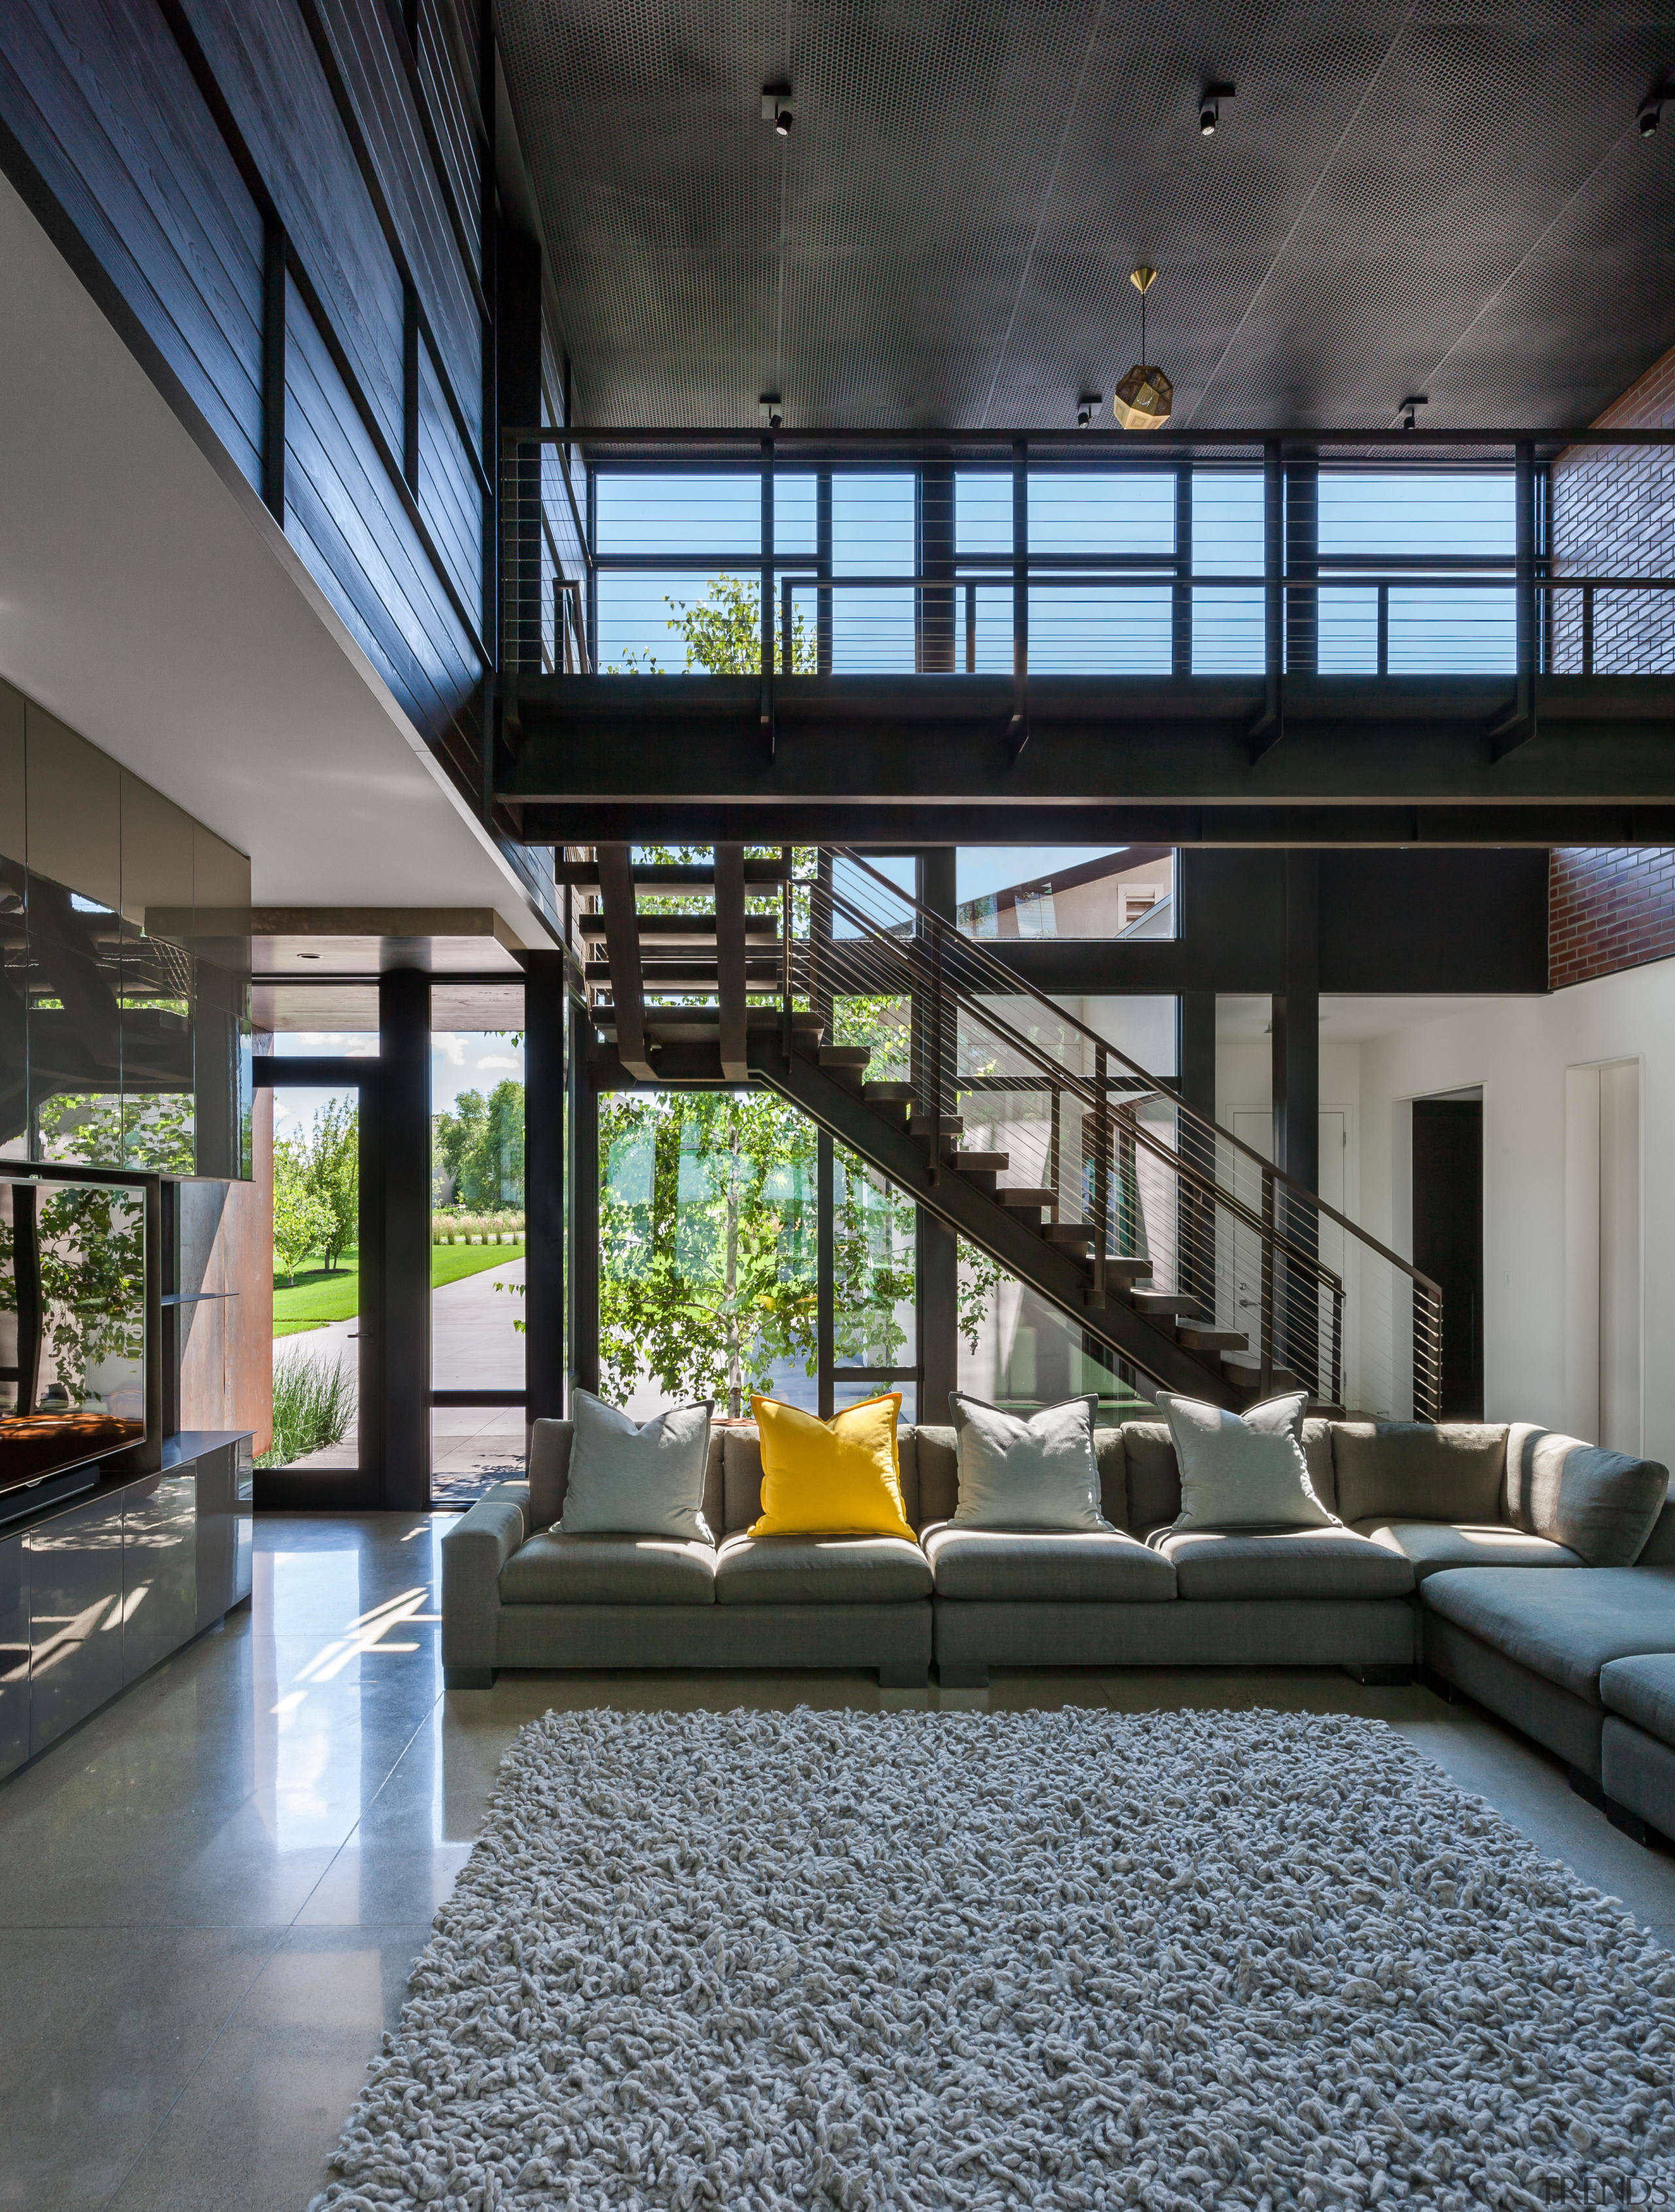 The living area in this family home is home, house, interior design, living room, furniture, light, industrial, Altus Architecture